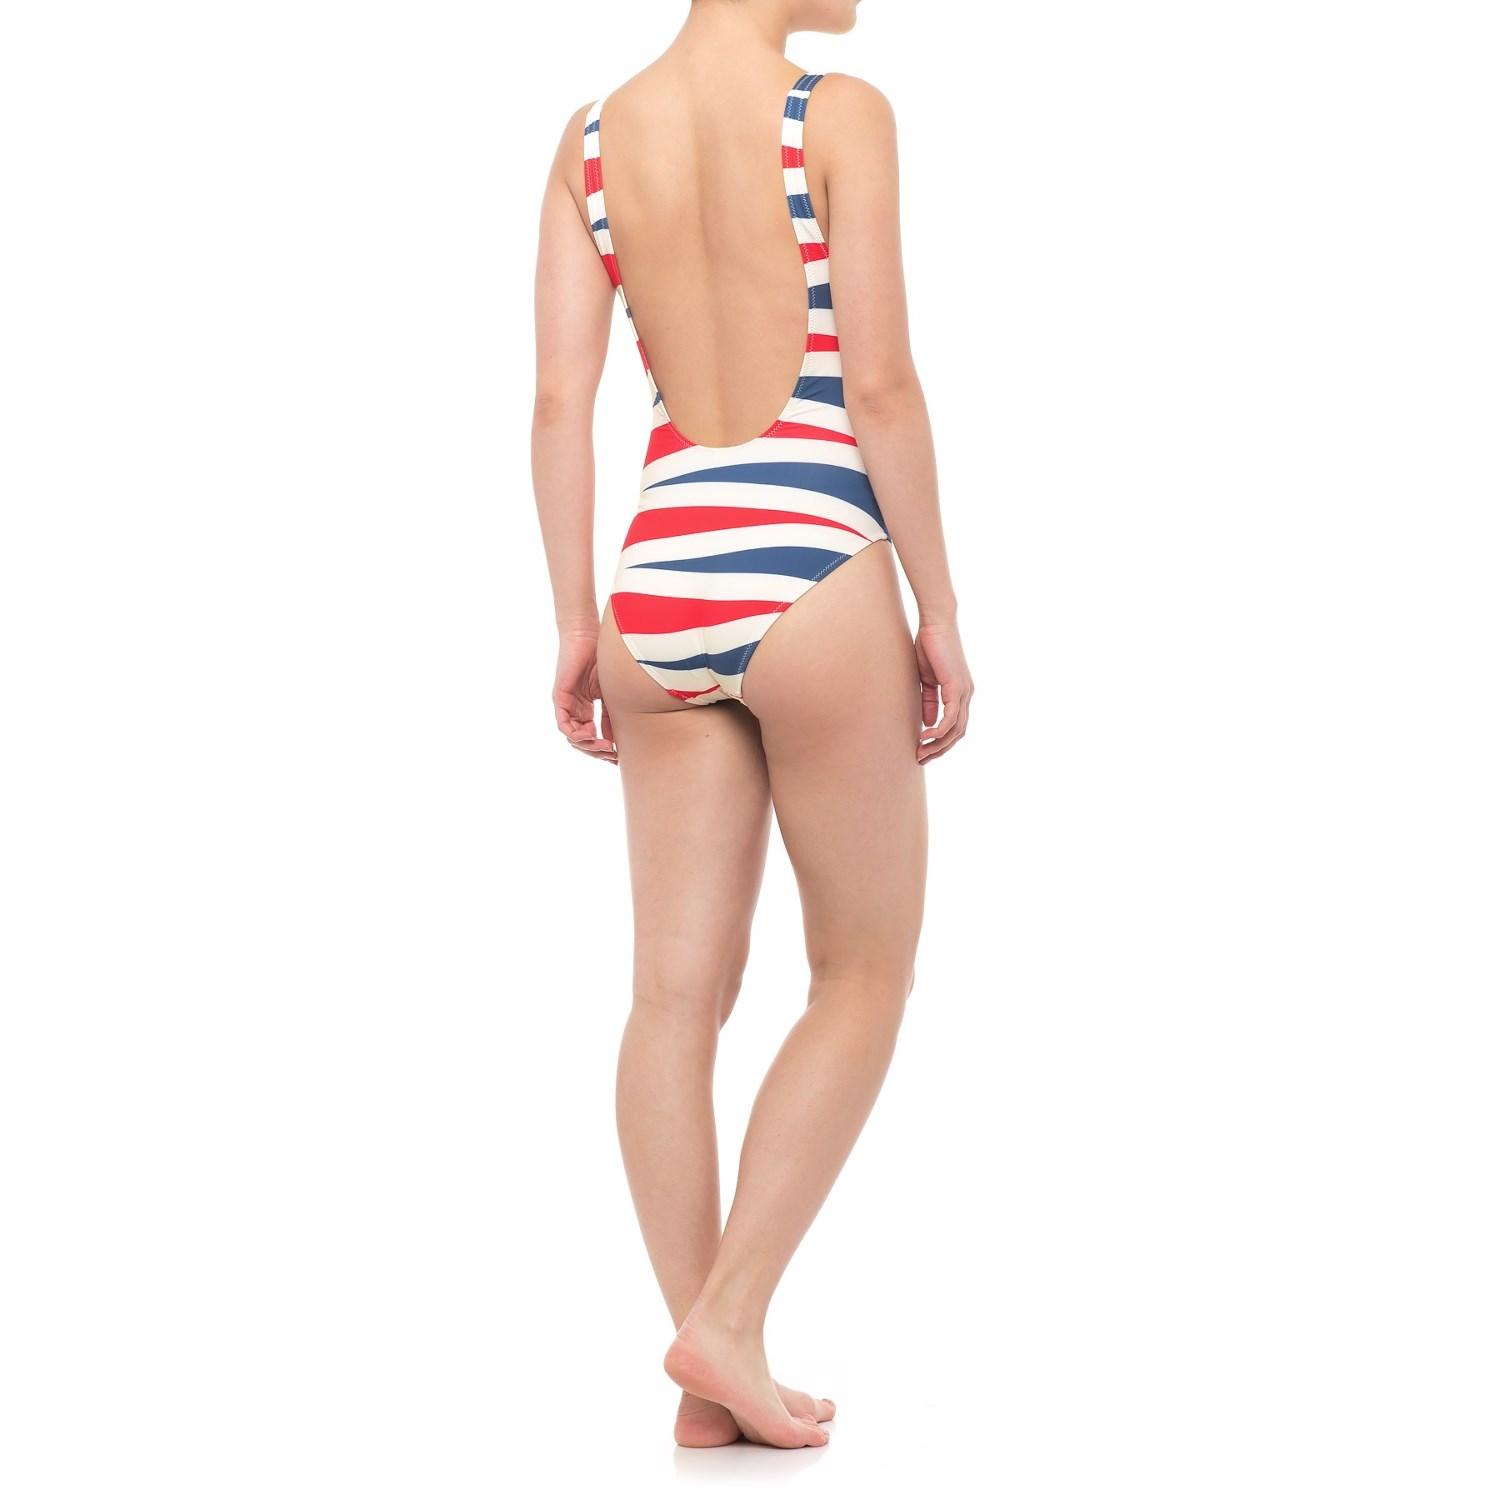 384b60e0619d8 Solid & Striped The Anne-Marie One Piece Swimsuit (For Women) - Save 86%